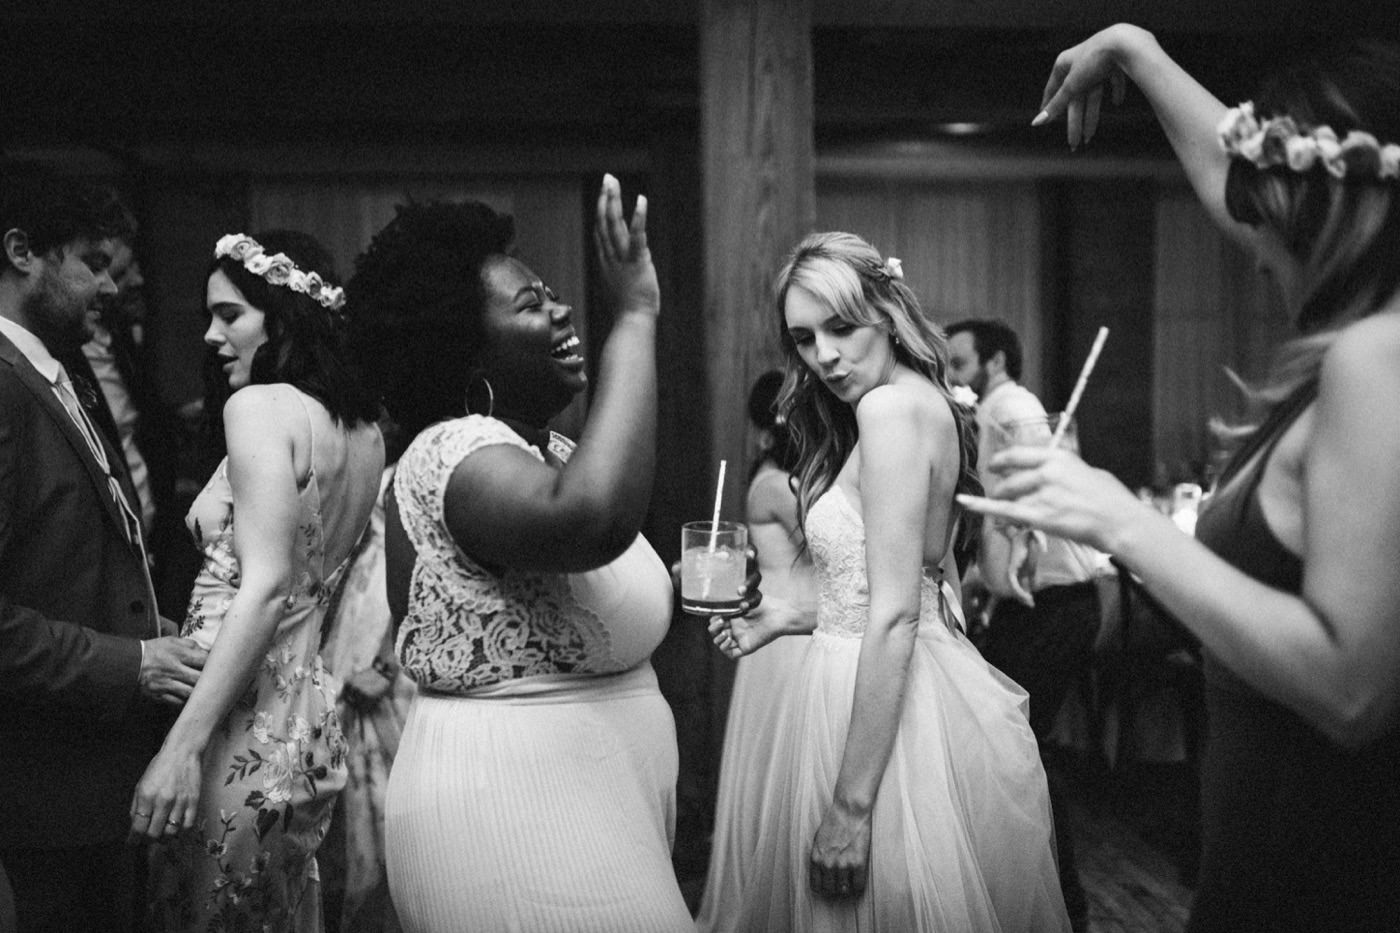 63_Lucy-Daniel-Chicago-Wedding-By-Sarah-Katherine-Davis-Photography0939bw.jpg